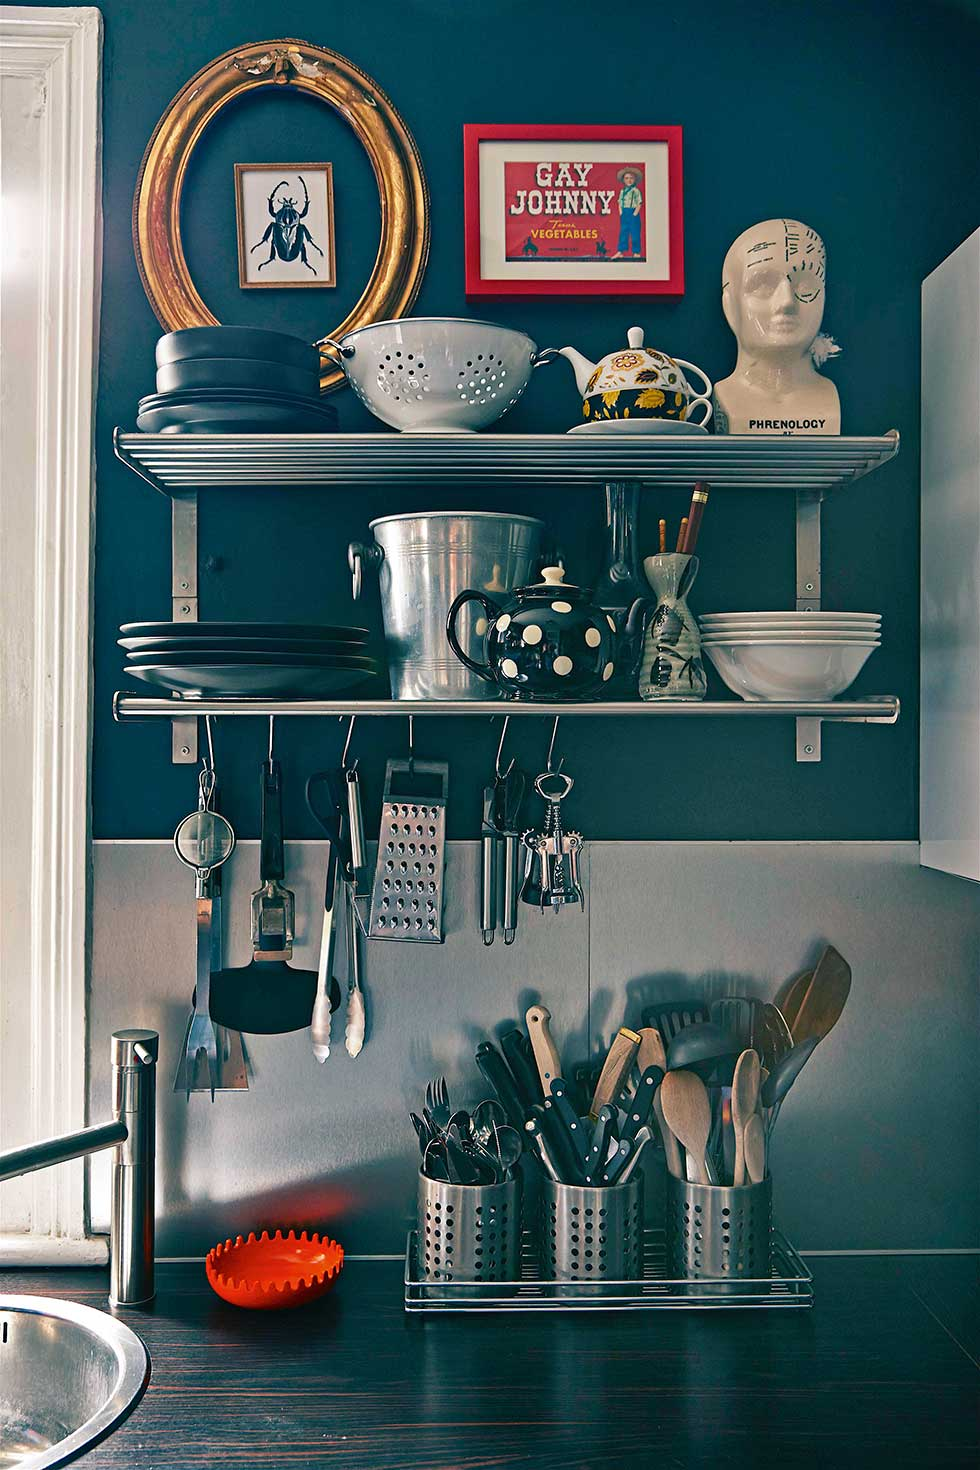 Duplex apartment kitchen utensils on shelves